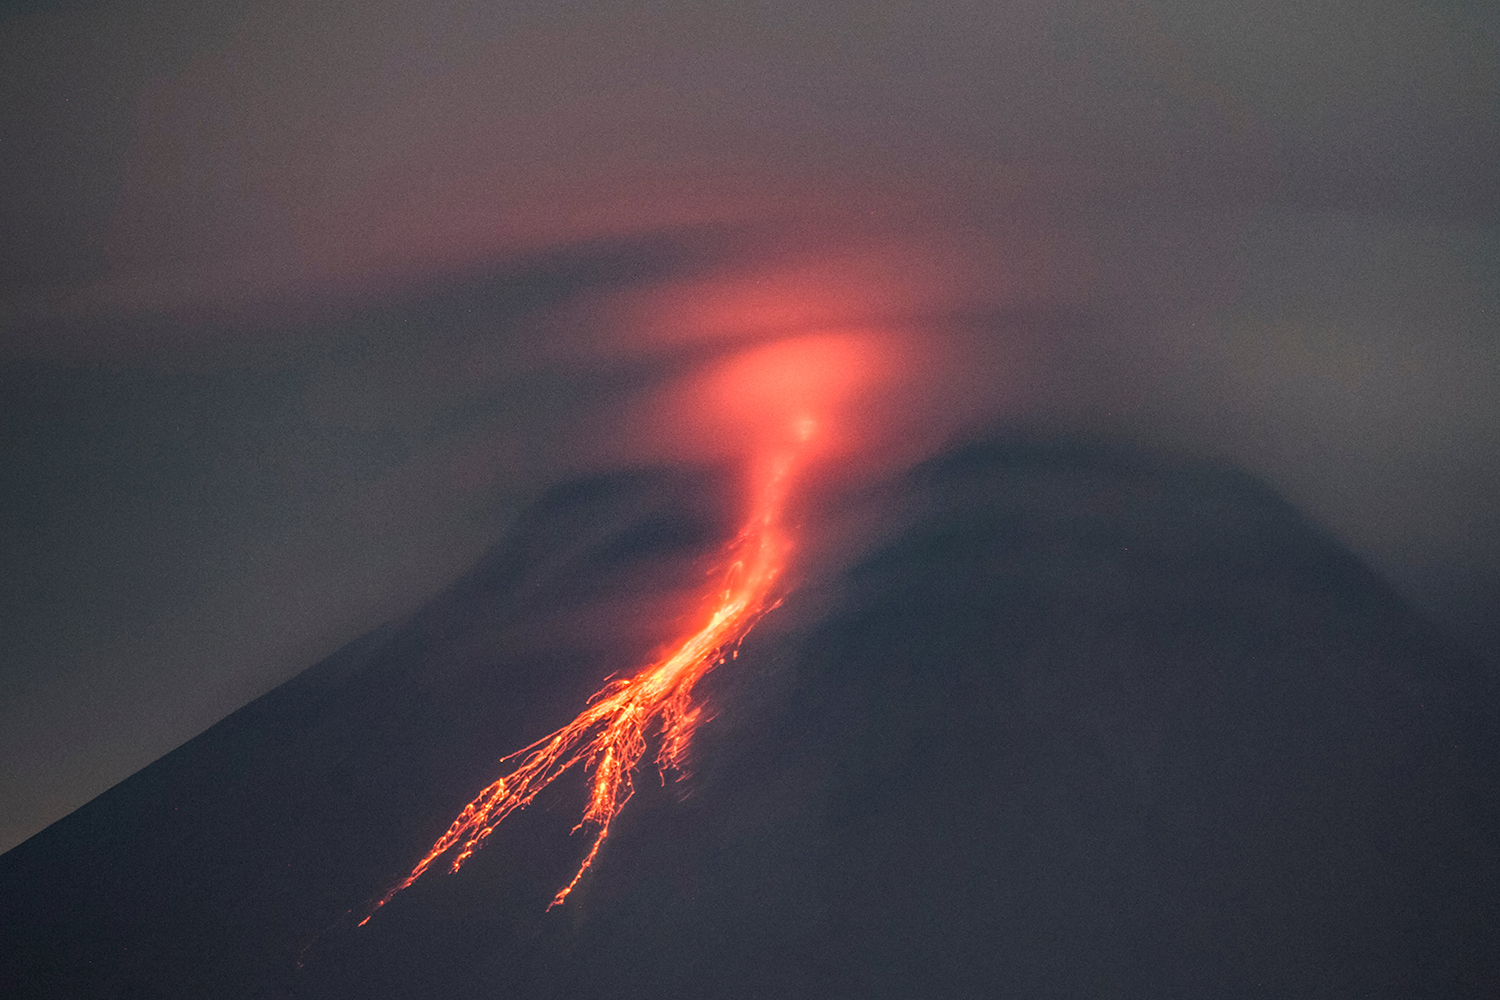 Lava flows from Mount Merapi as seen from Yogyakarta, Indonesia, on Jan. 19. AGUNG SUPRIYANTO/AFP via Getty Images